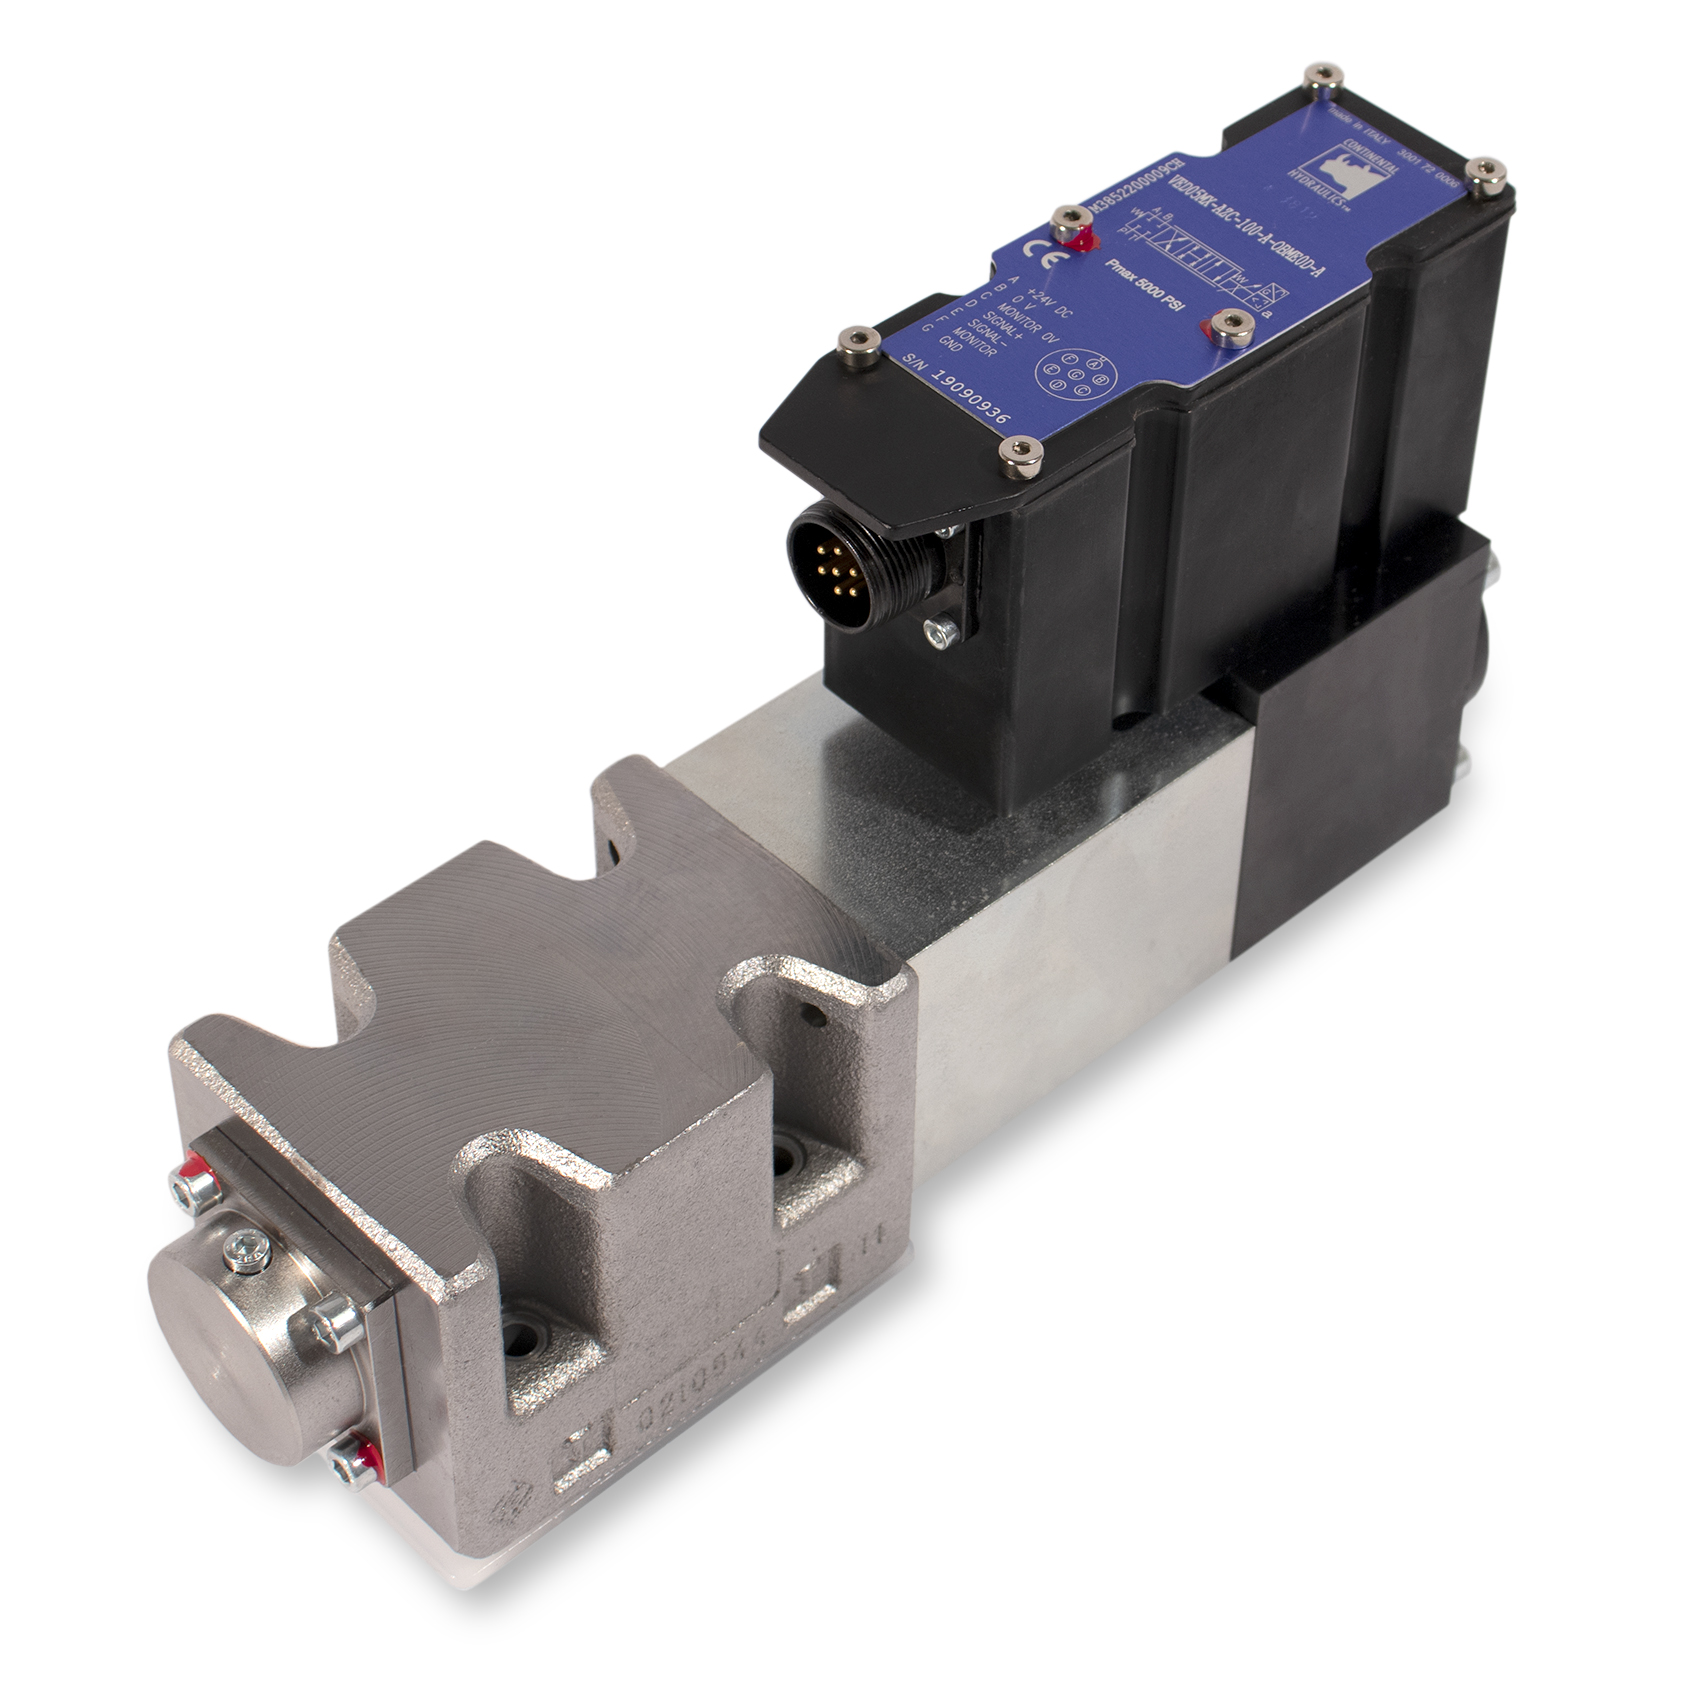 VED05MX_AZC_100_1_OBME0D_A high performance servo-proportional valve product; white background